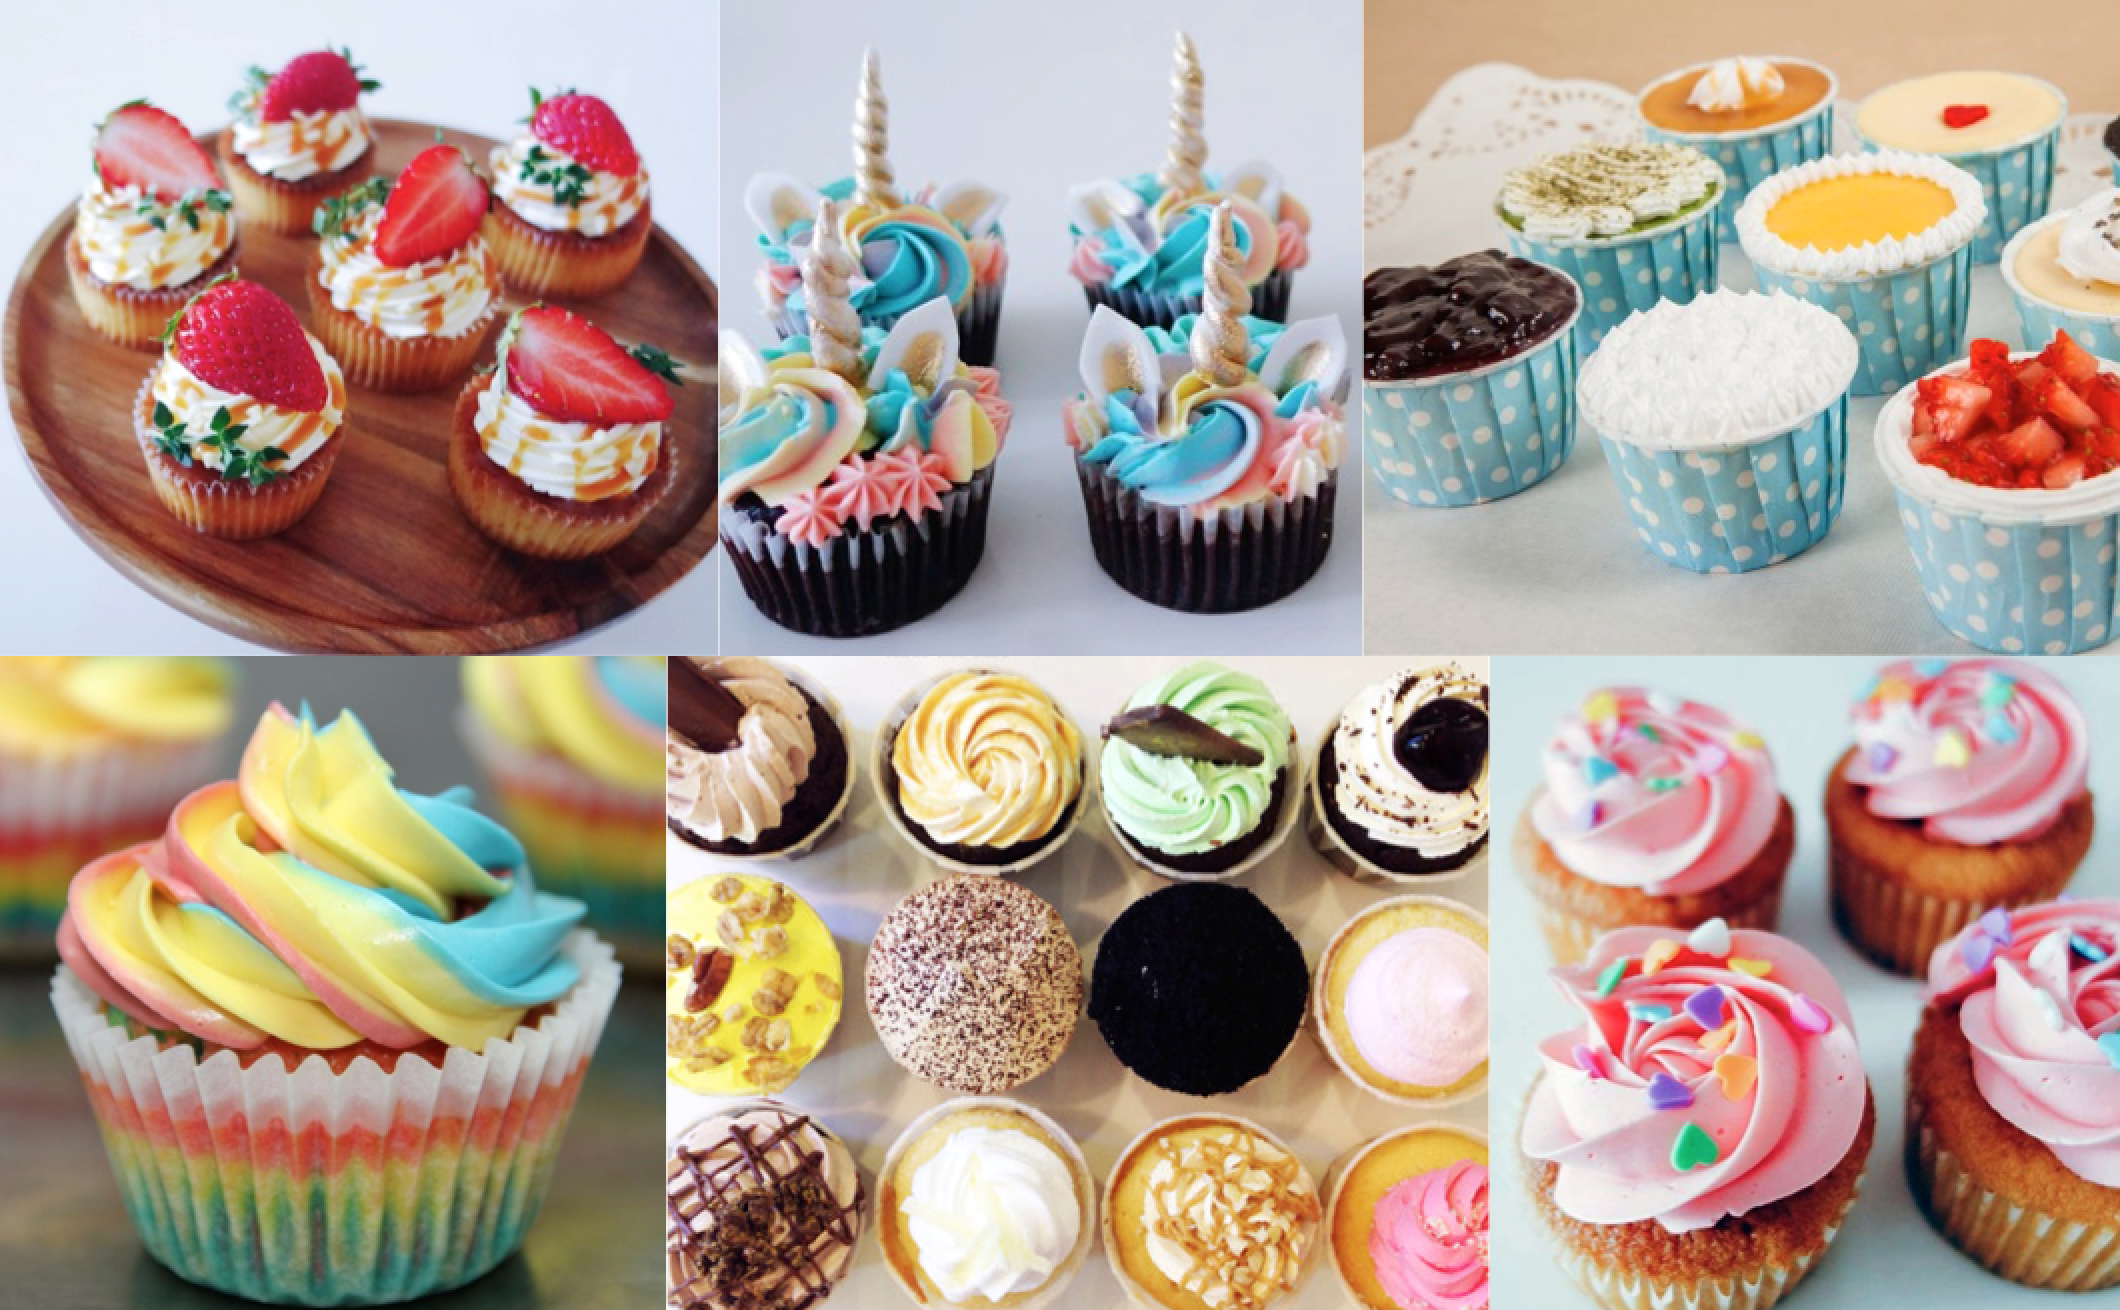 10 Best Cupcake Shops In Singapore To Satisfy Your Sweet Tooth